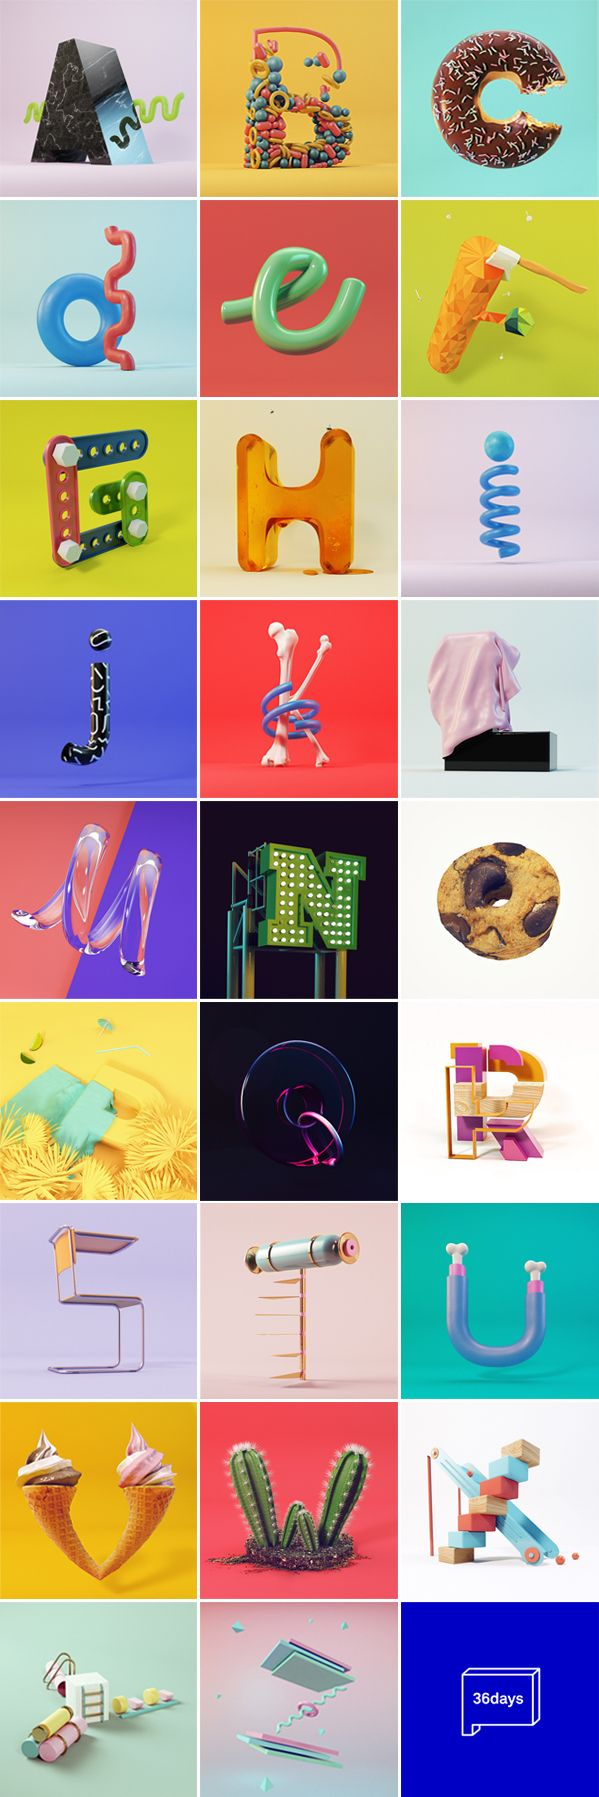 36daysoftype is a project that invites designers, illustrators and graphic artists to give ​their particular view on the signs from our alphabet.